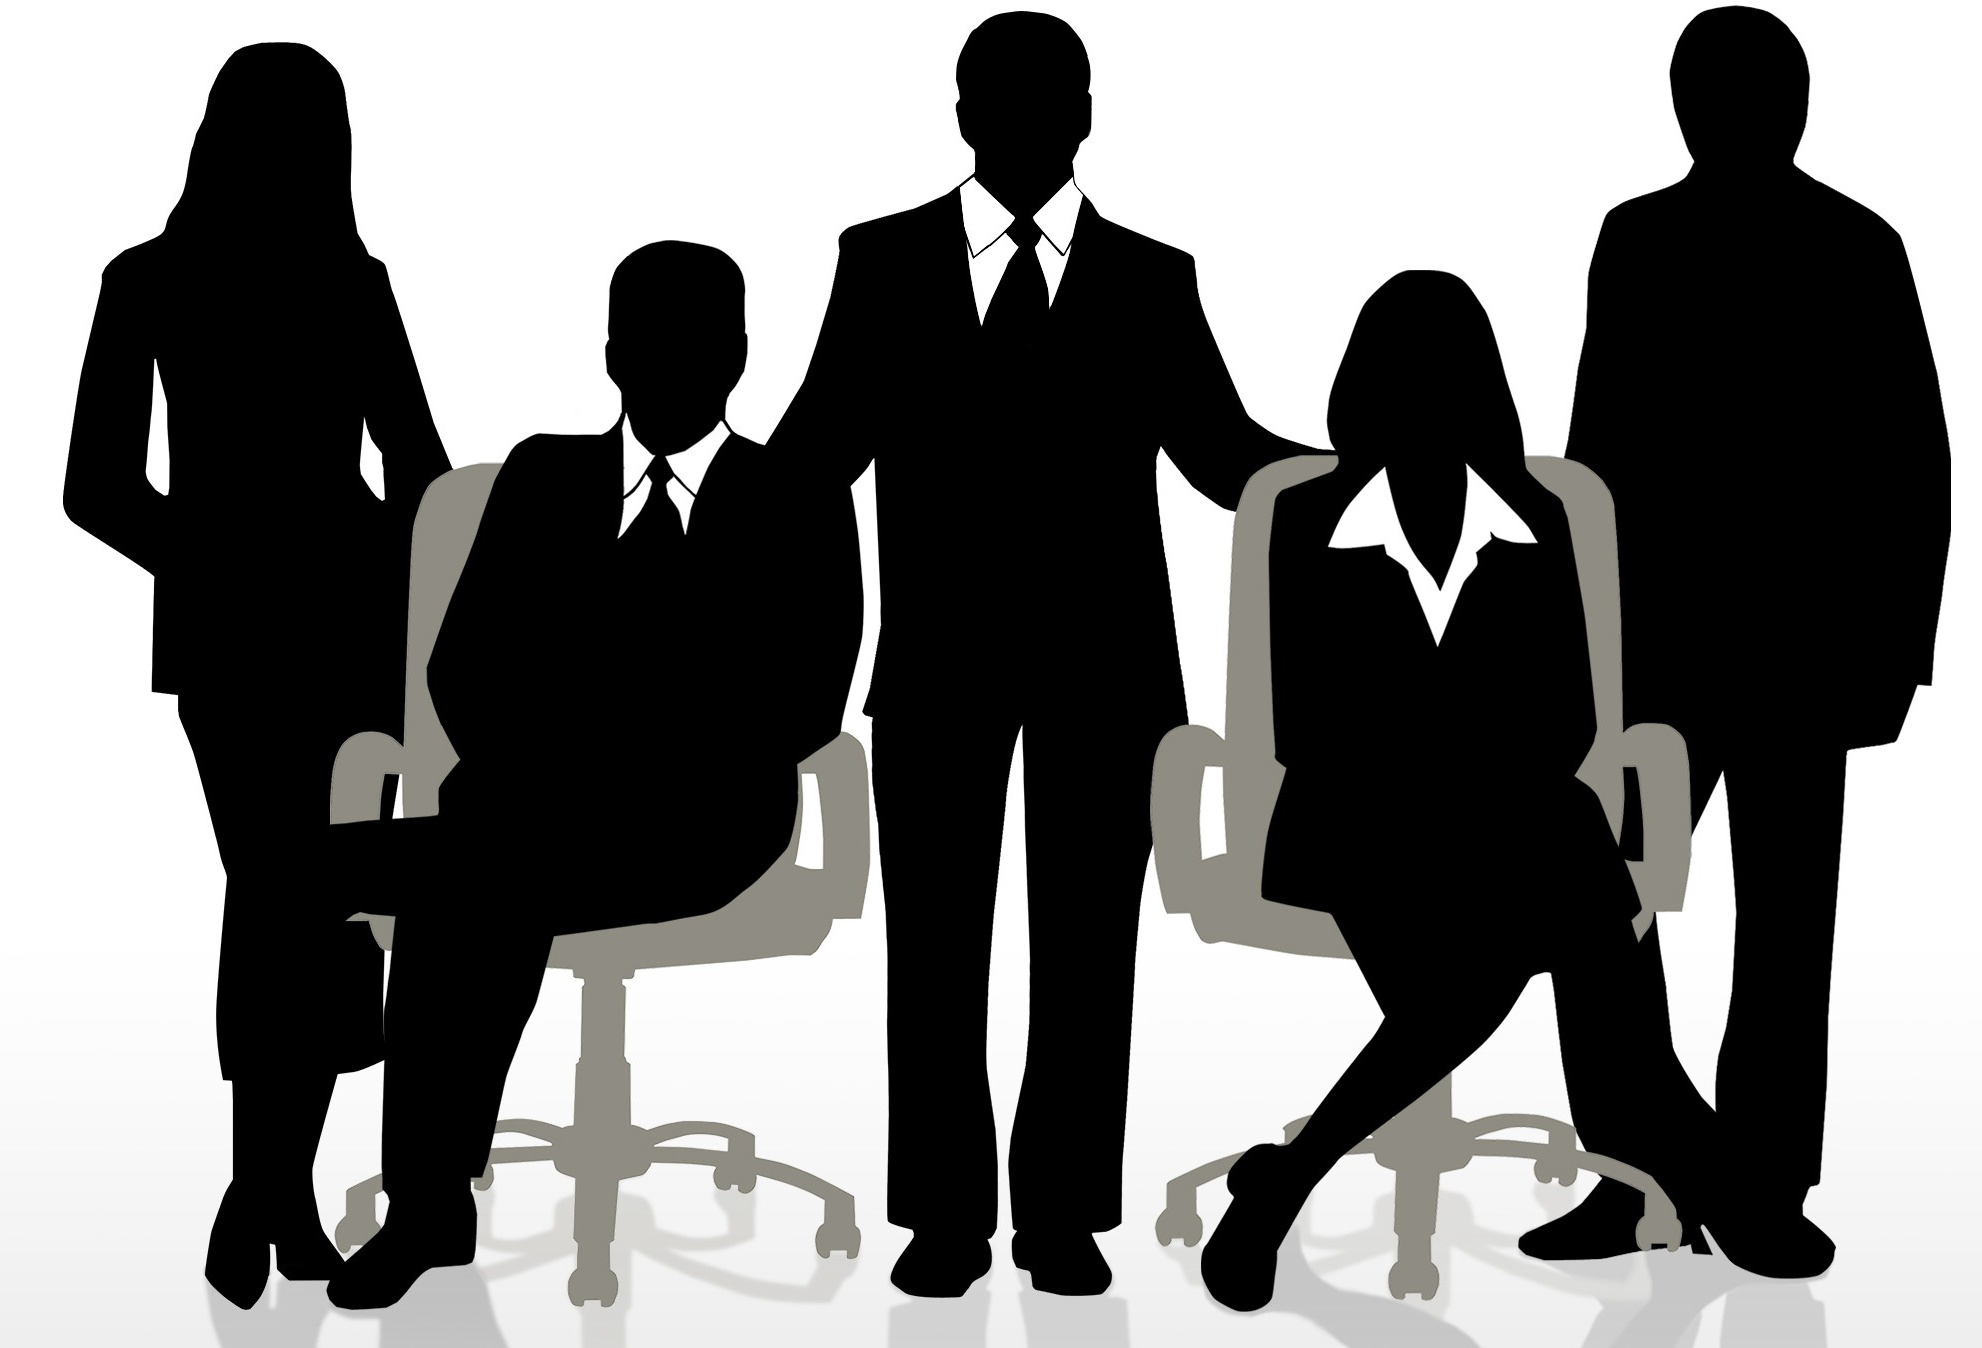 Silhouette-Business-Team-cropped-long-e1301081946528.jpg